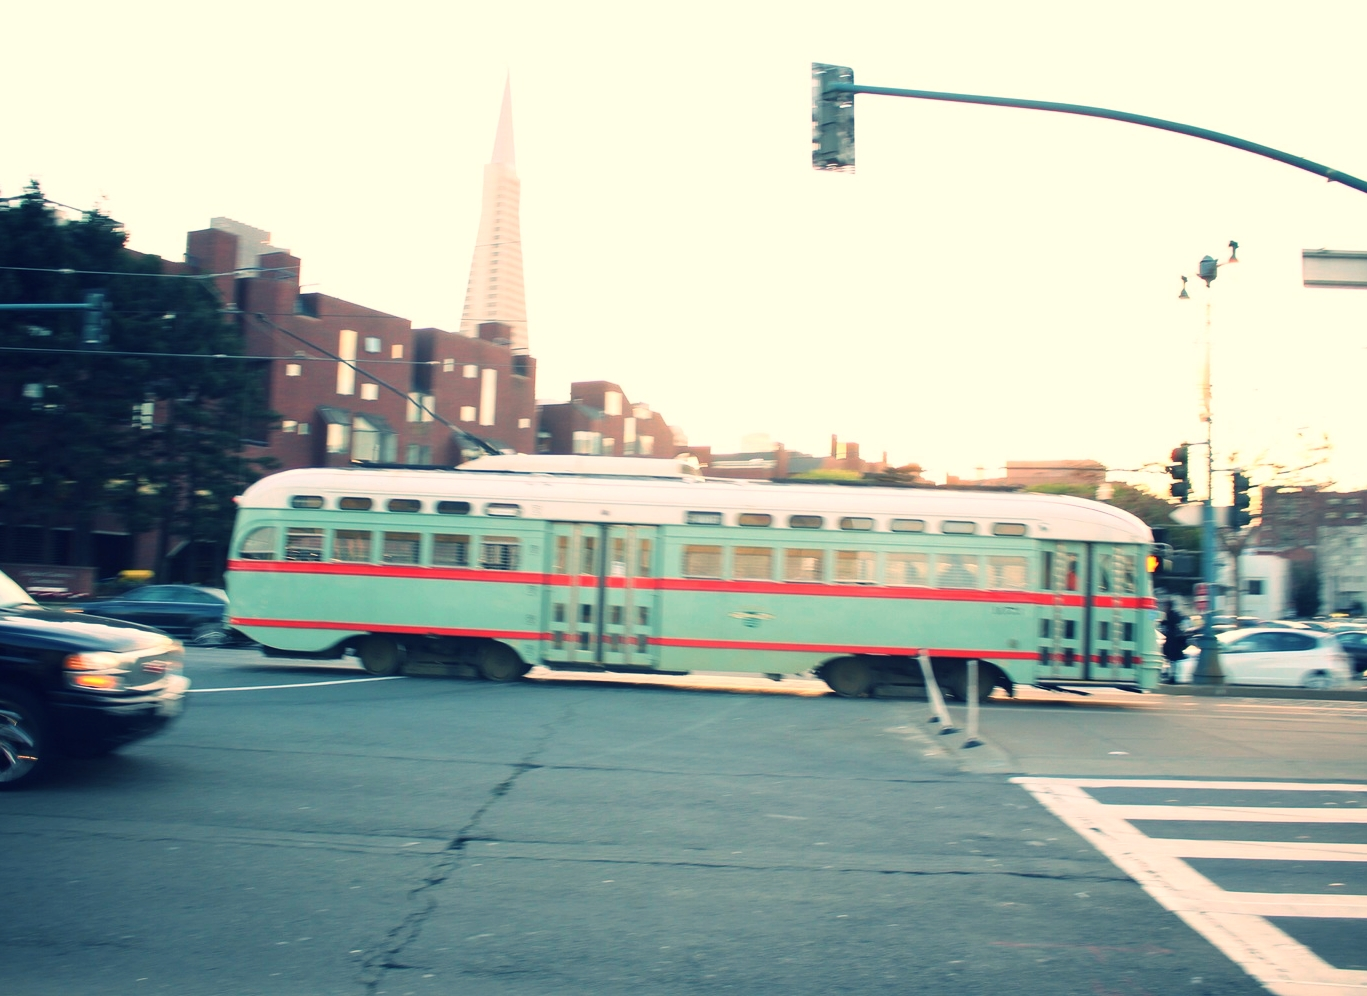 I love how the city takes this vintage street cars, that often come from places like Italy, and renovate them.